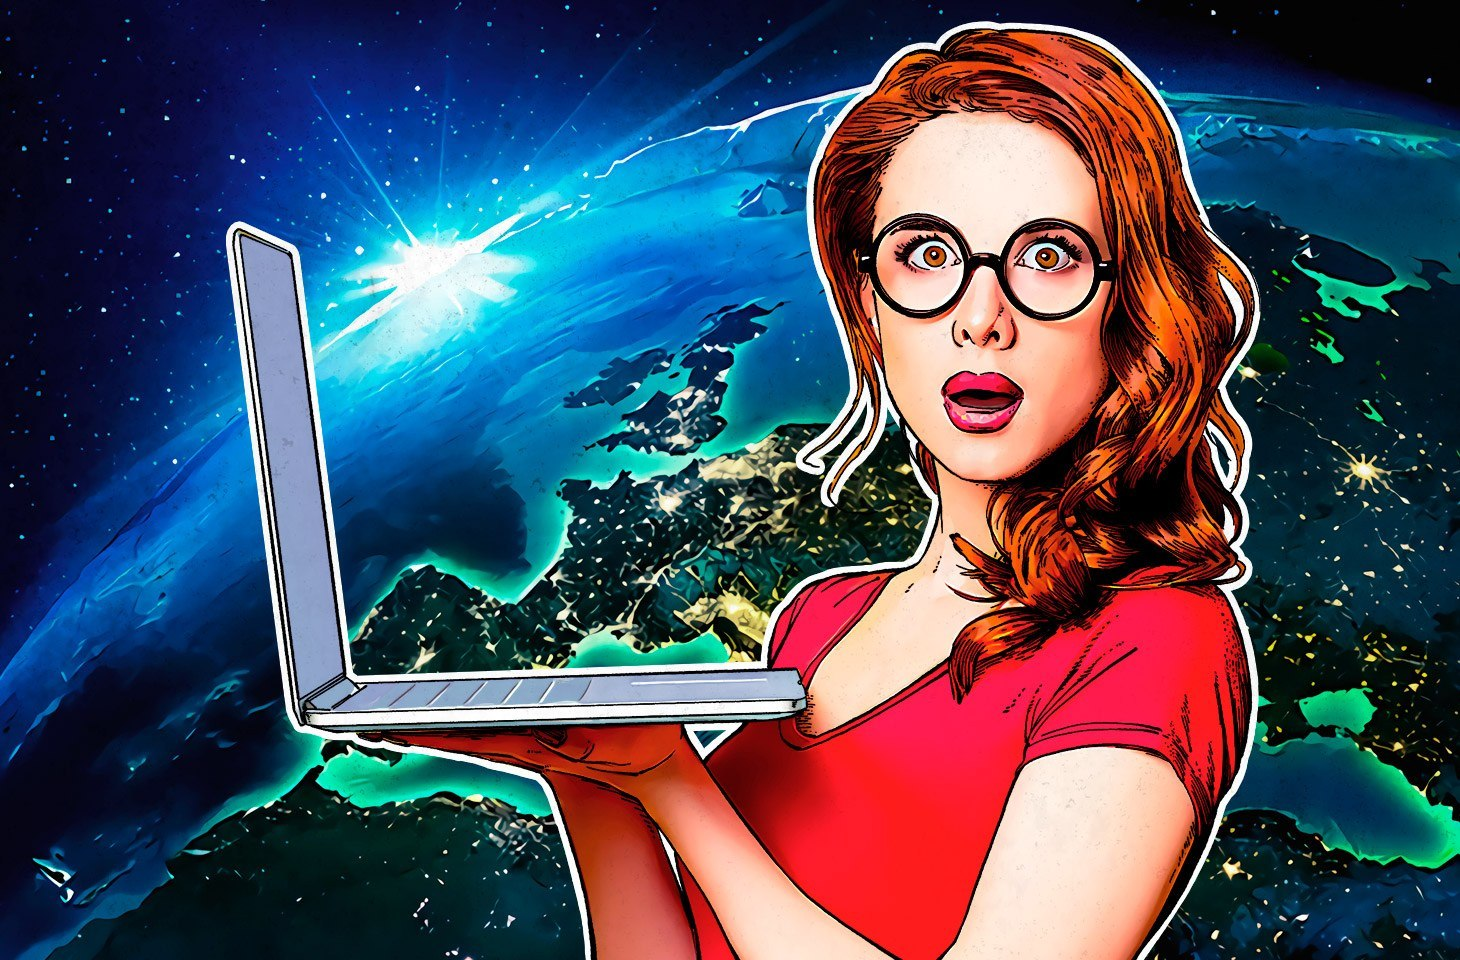 APAC online users give up details for fun quiz results and freebies online – Kaspersky study